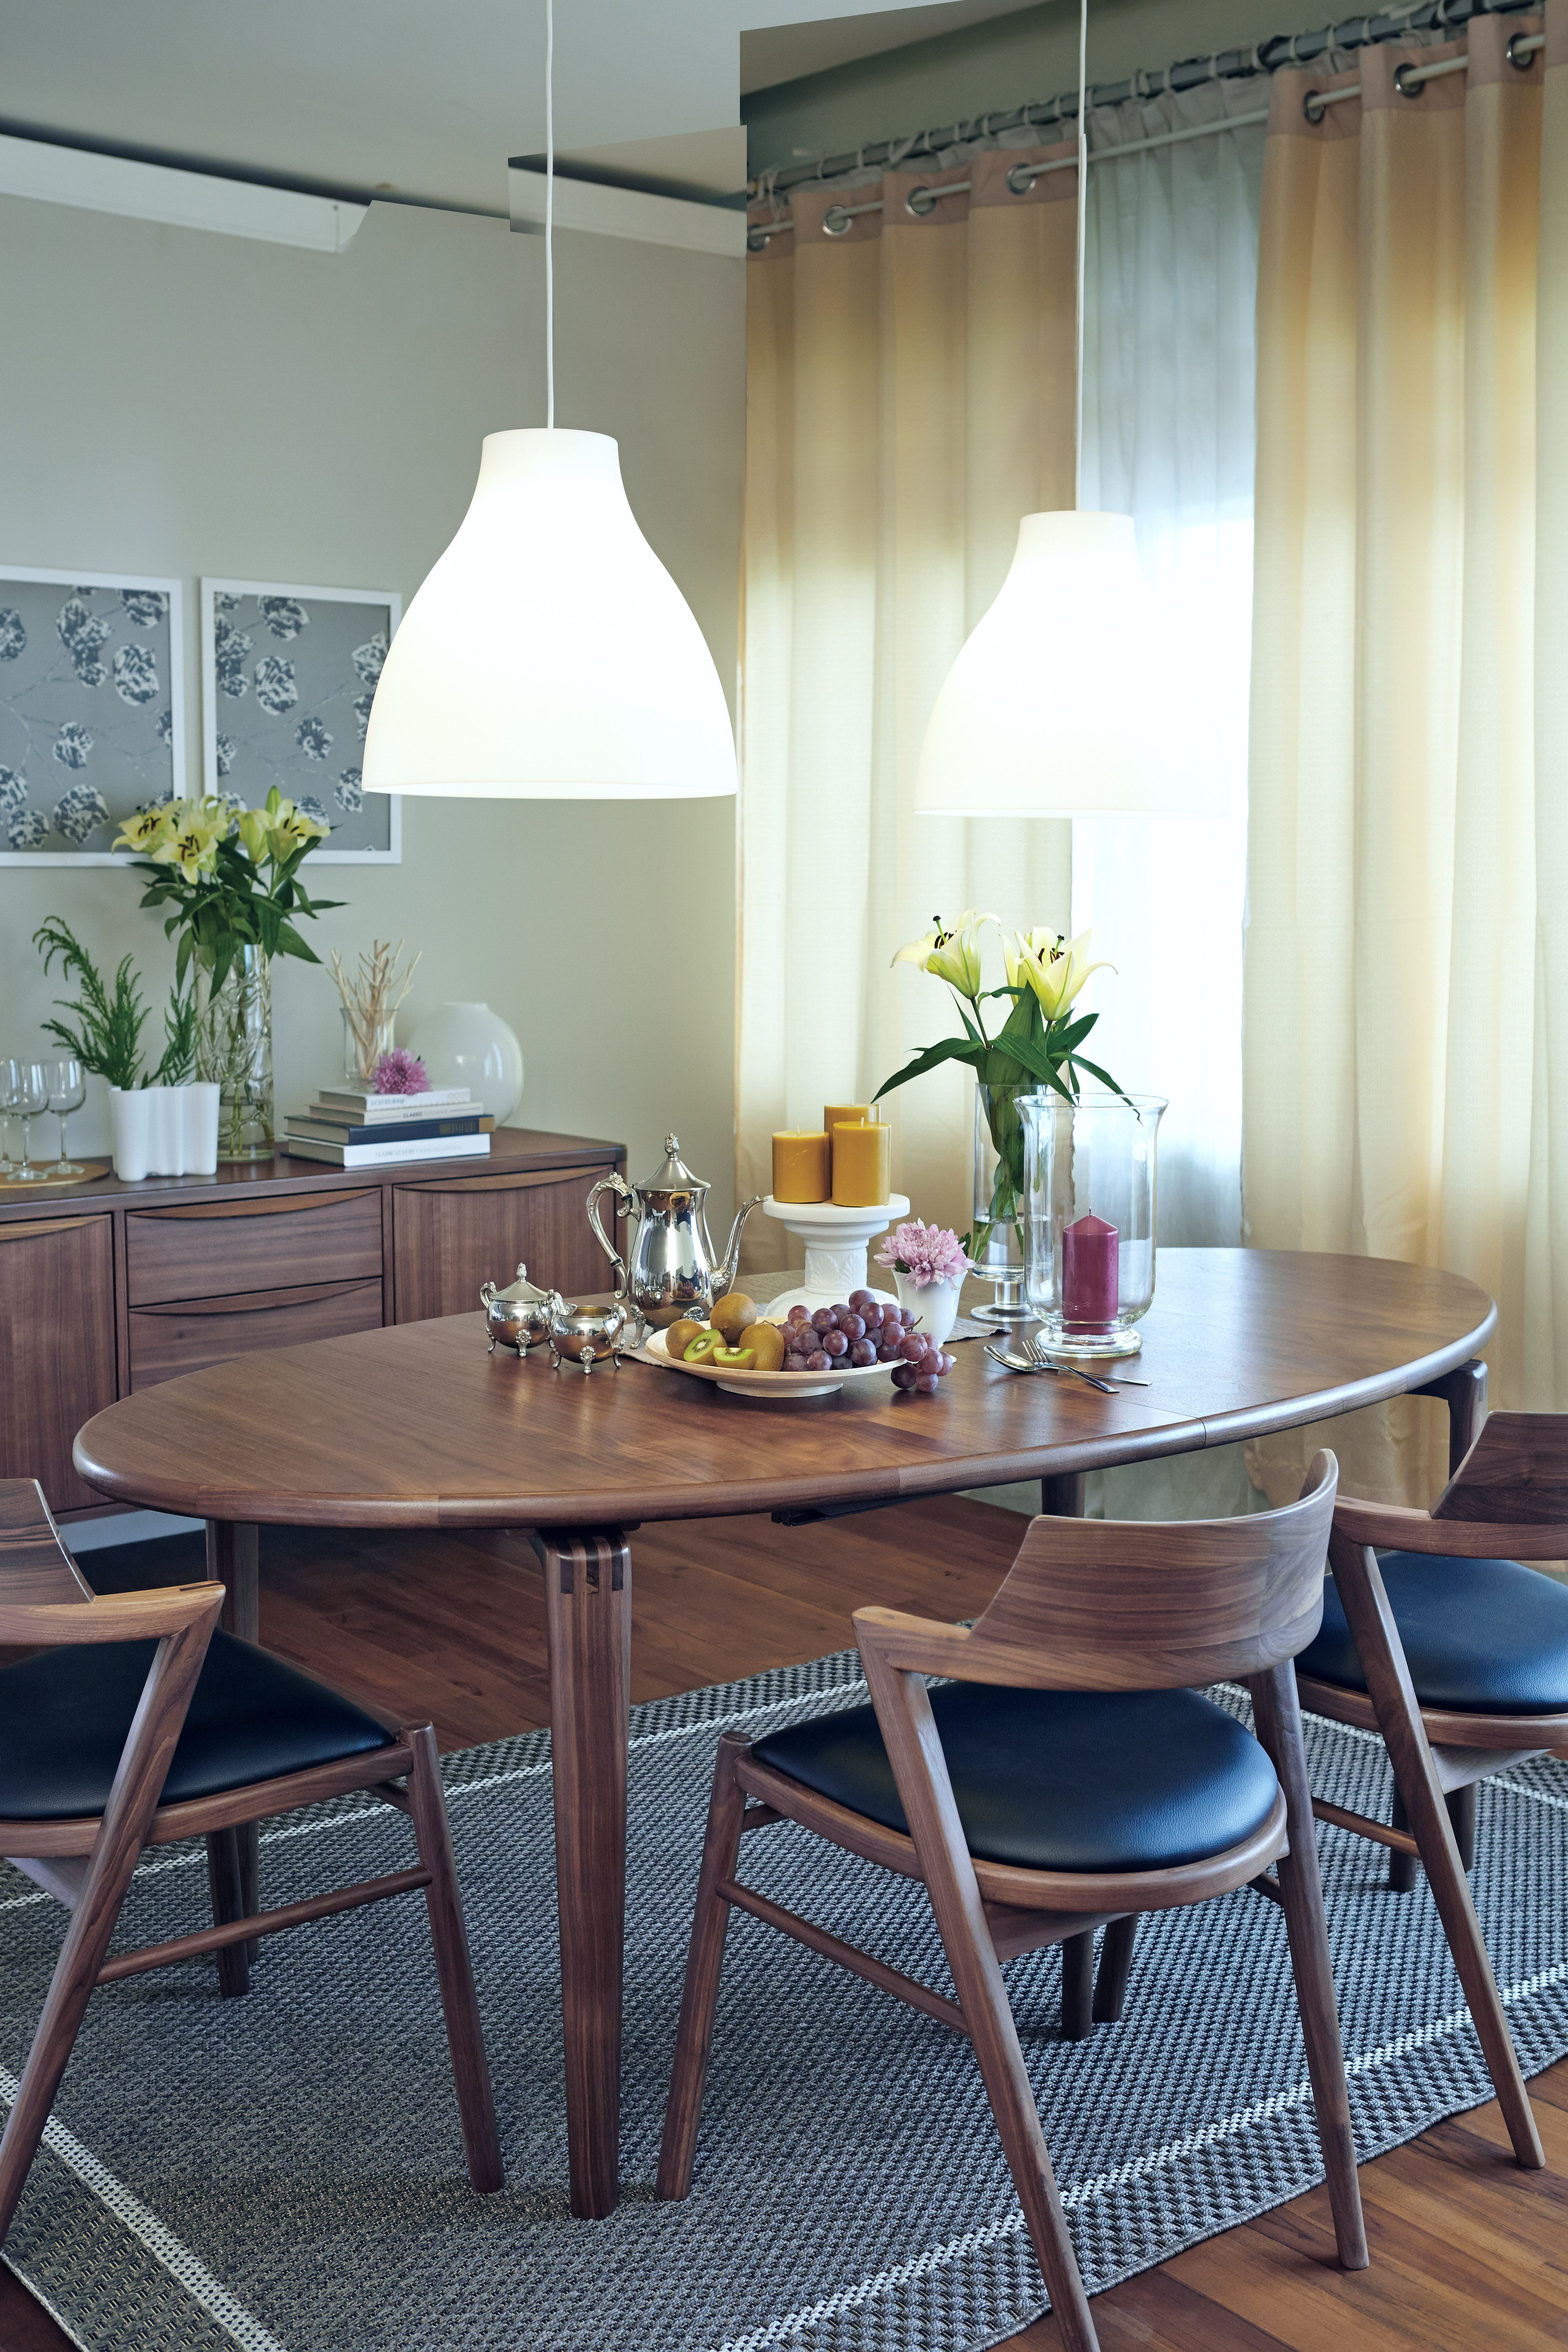 Jm203 House Of Denmark Luxury Dining Room Oval Table Dining Walnut Dining Chairs